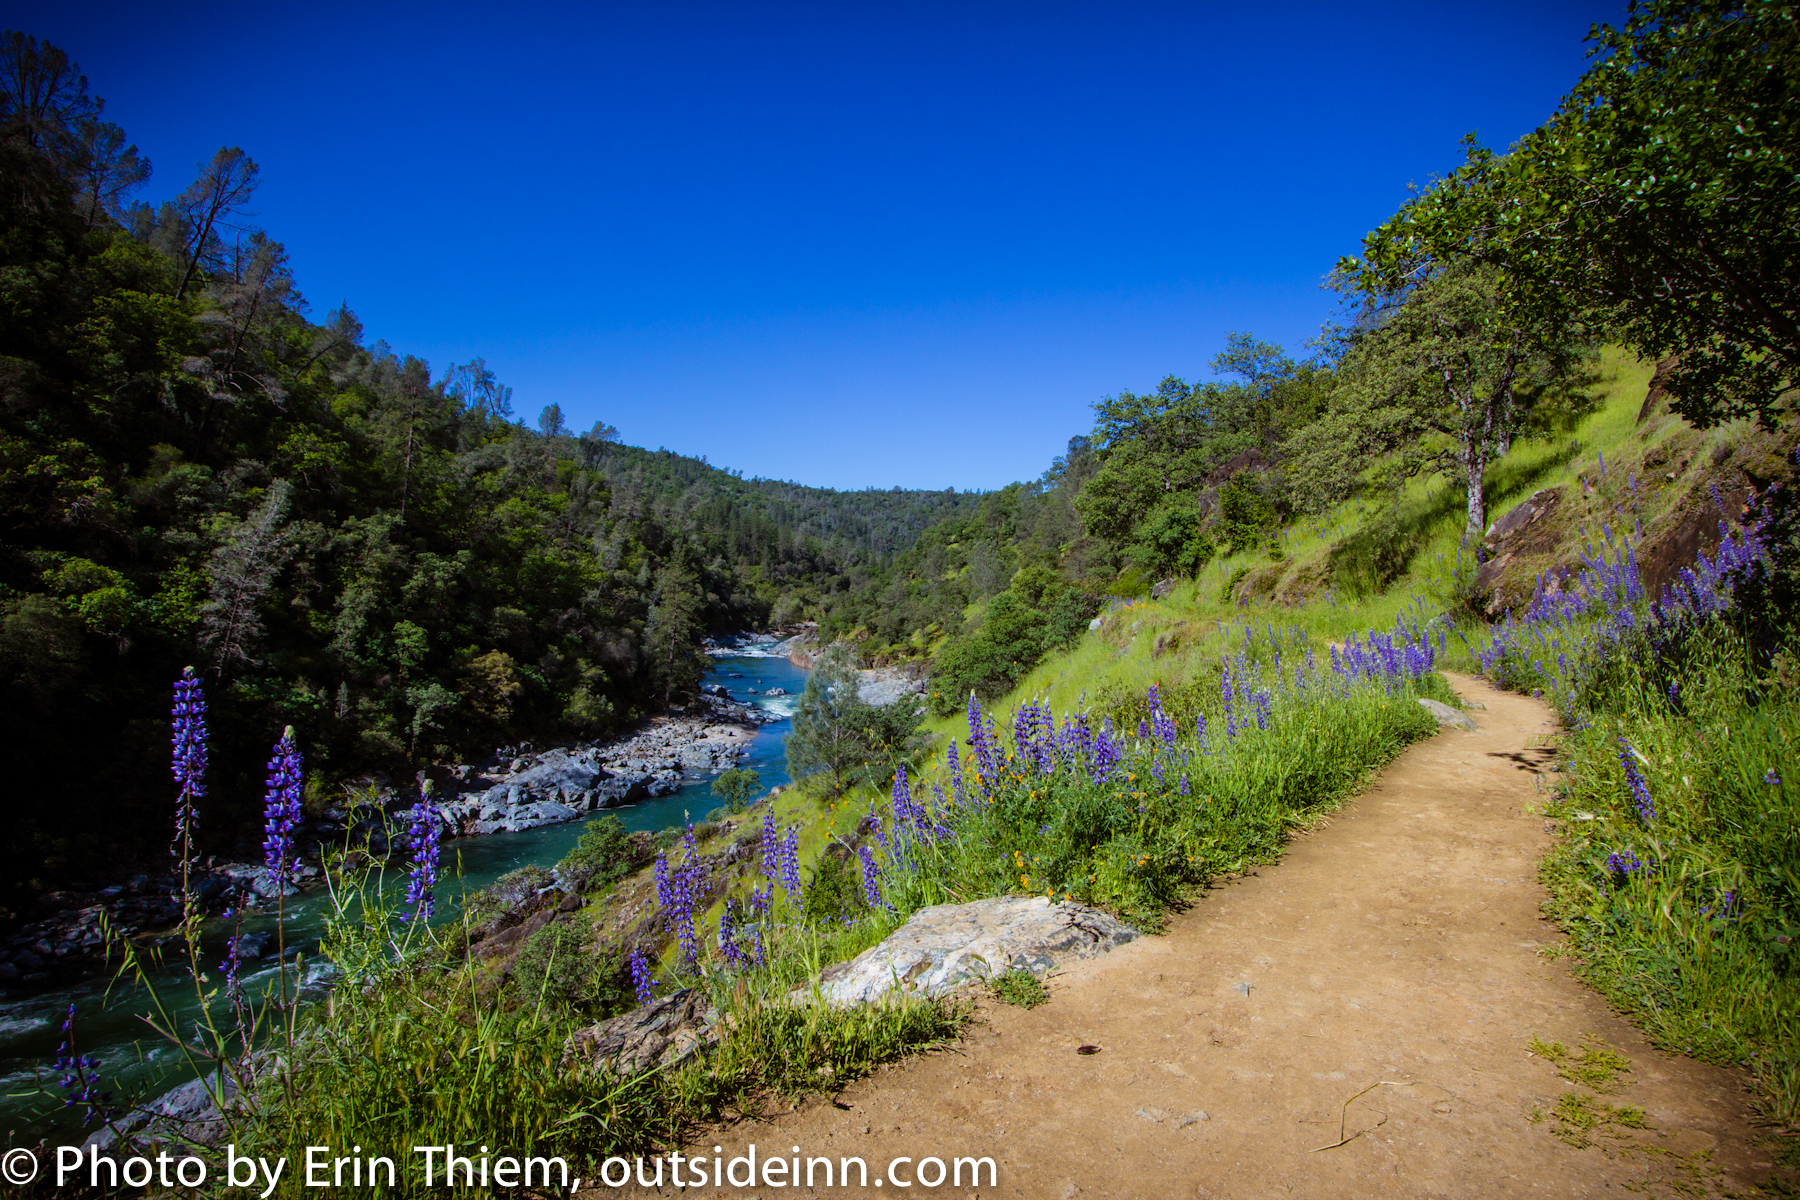 South Yuba River, photo courtesy of Erin Thiem